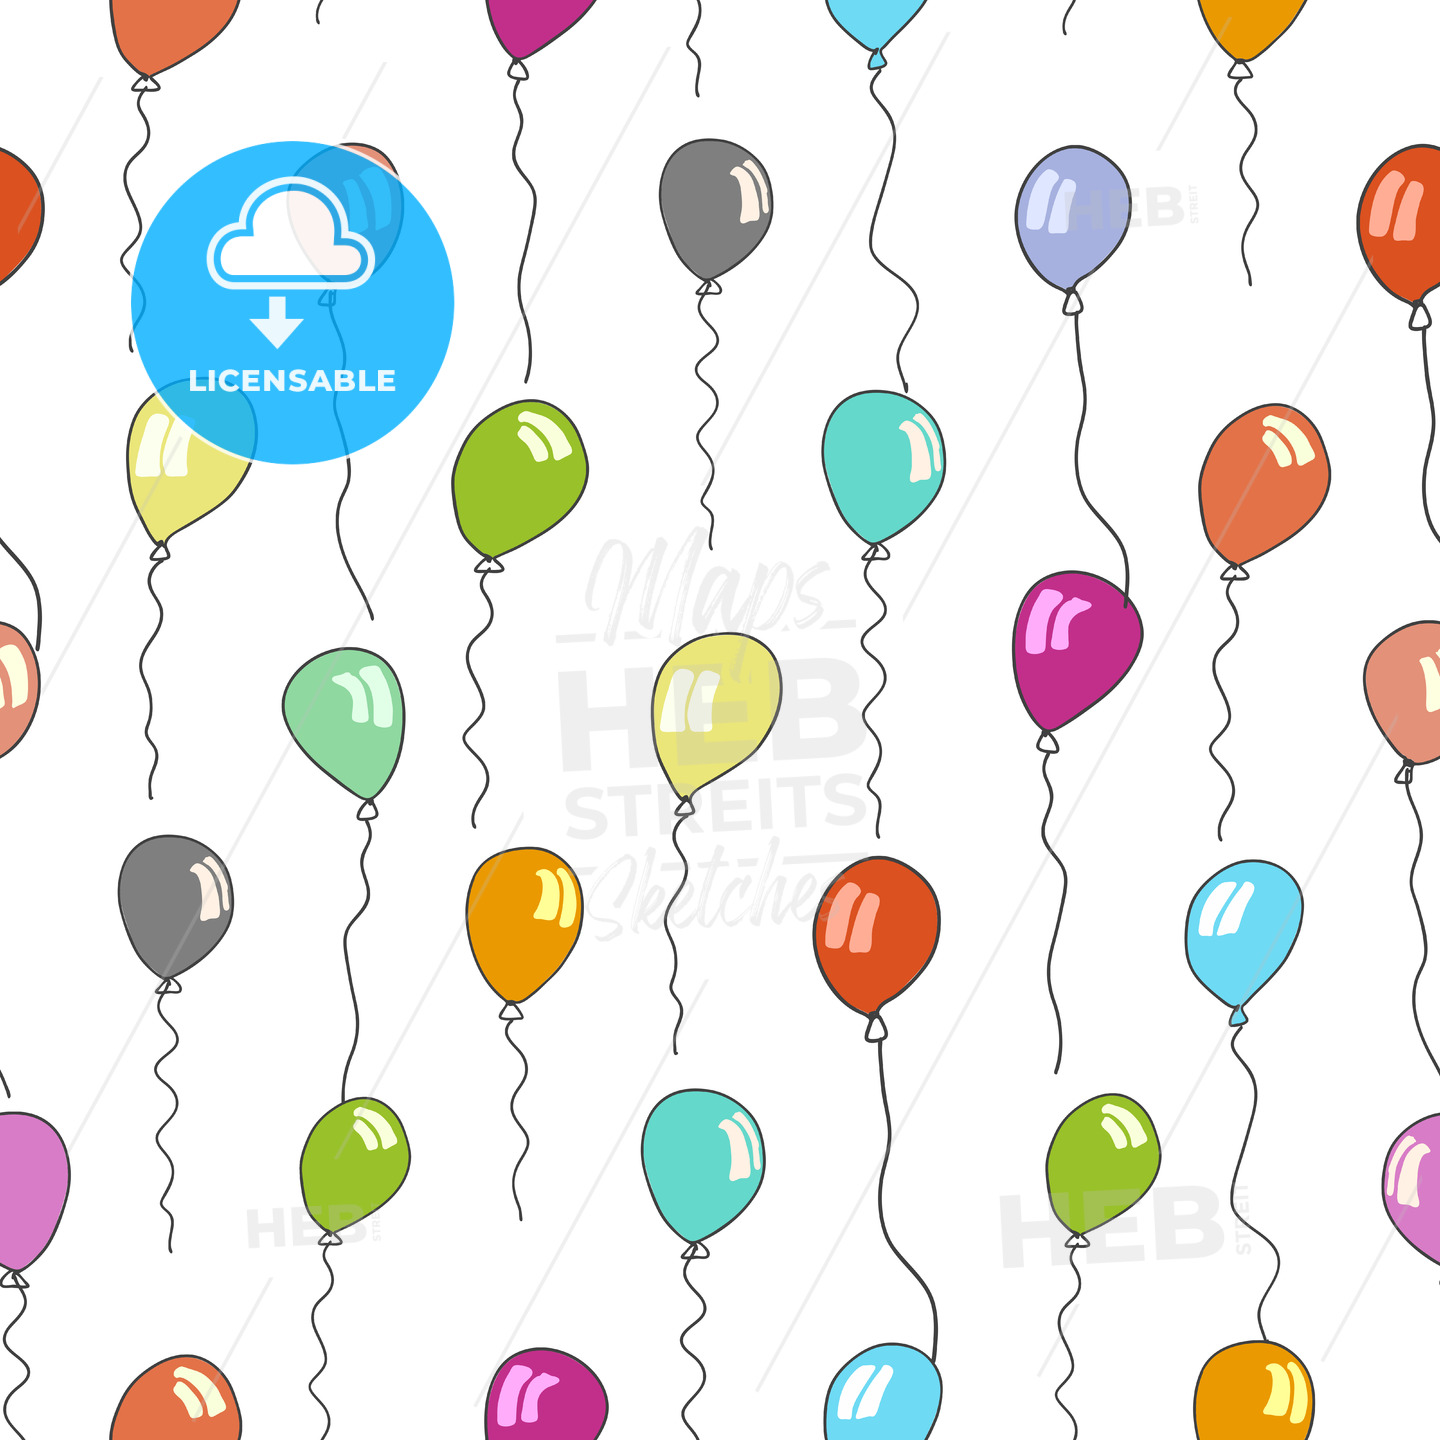 seamless pattern of balloons in various colors - HEBSTREITS